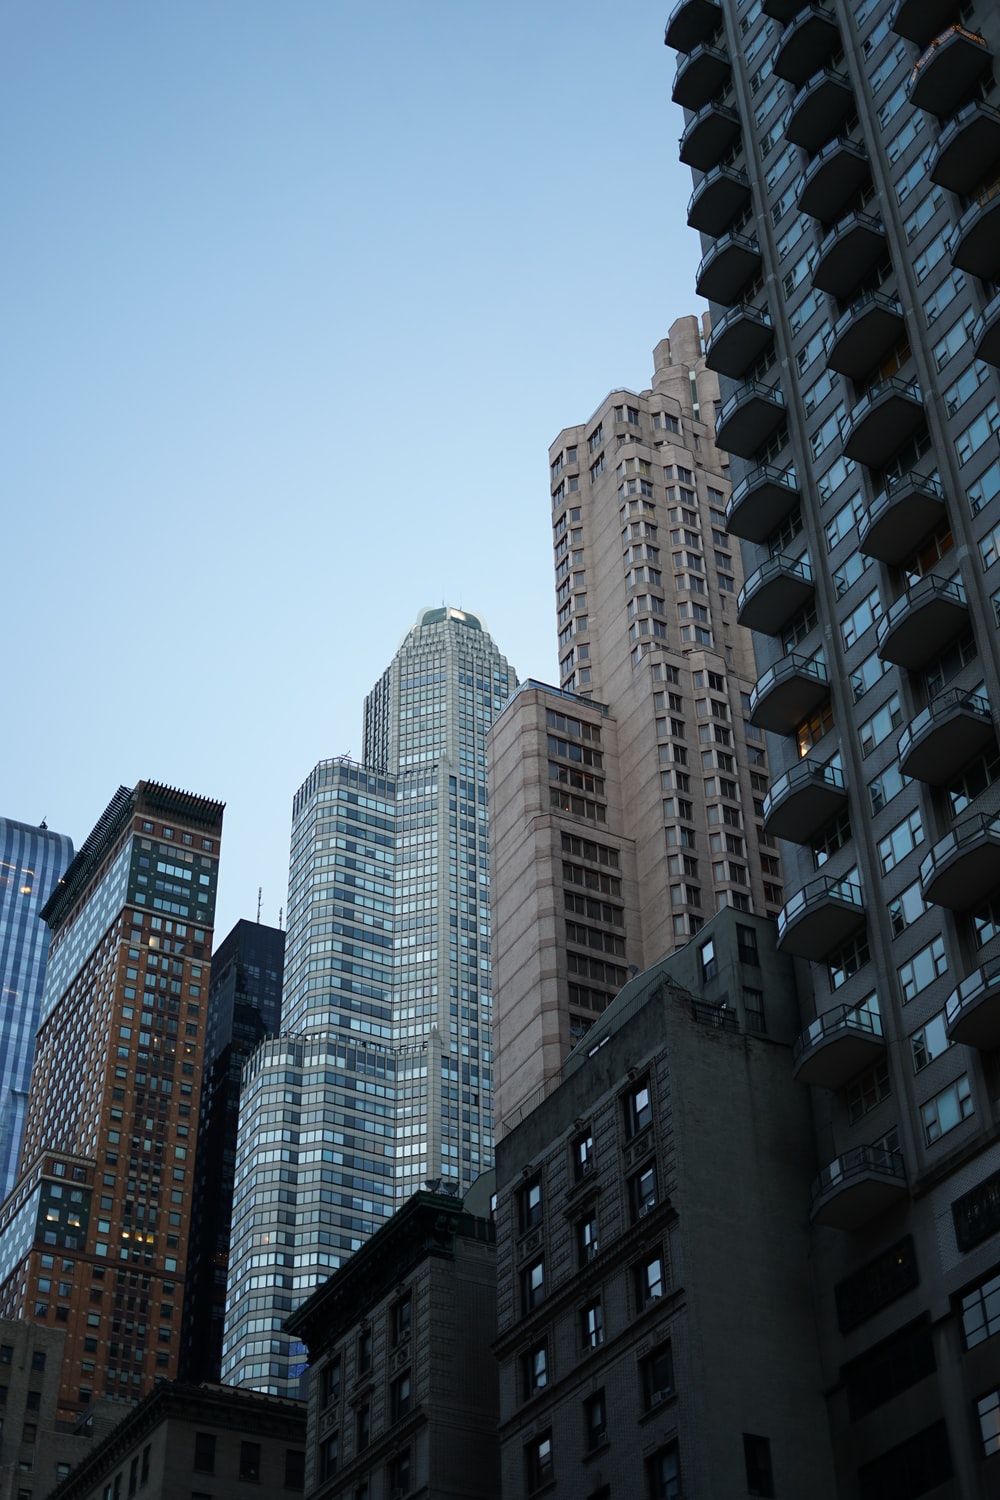 high rise buildings under blue sky during daytime